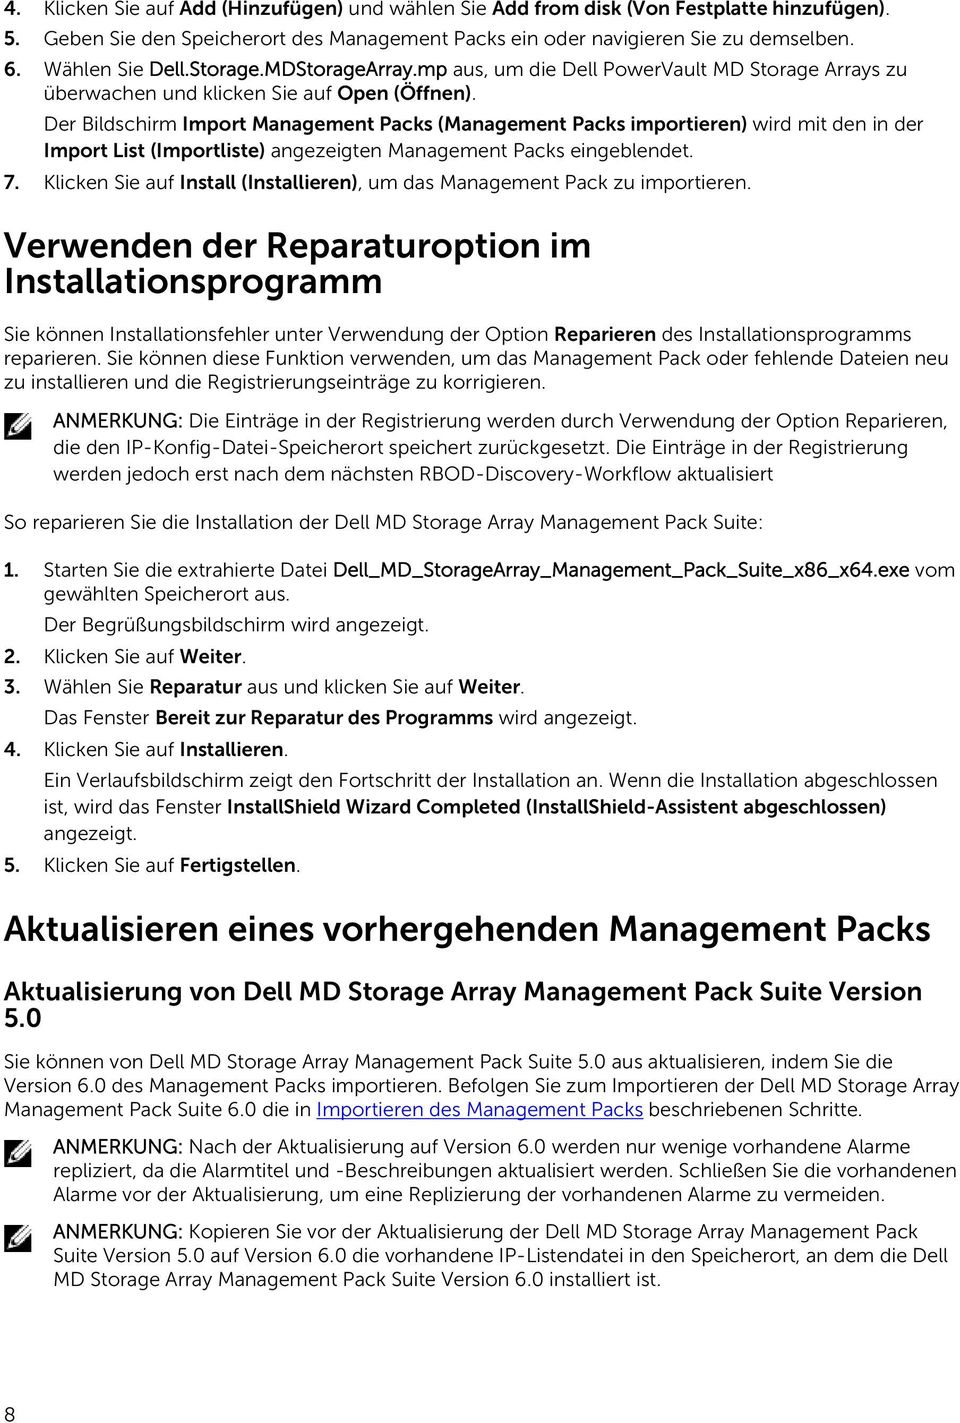 Der Bildschirm Import Management Packs (Management Packs importieren) wird mit den in der Import List (Importliste) angezeigten Management Packs eingeblendet. 7.